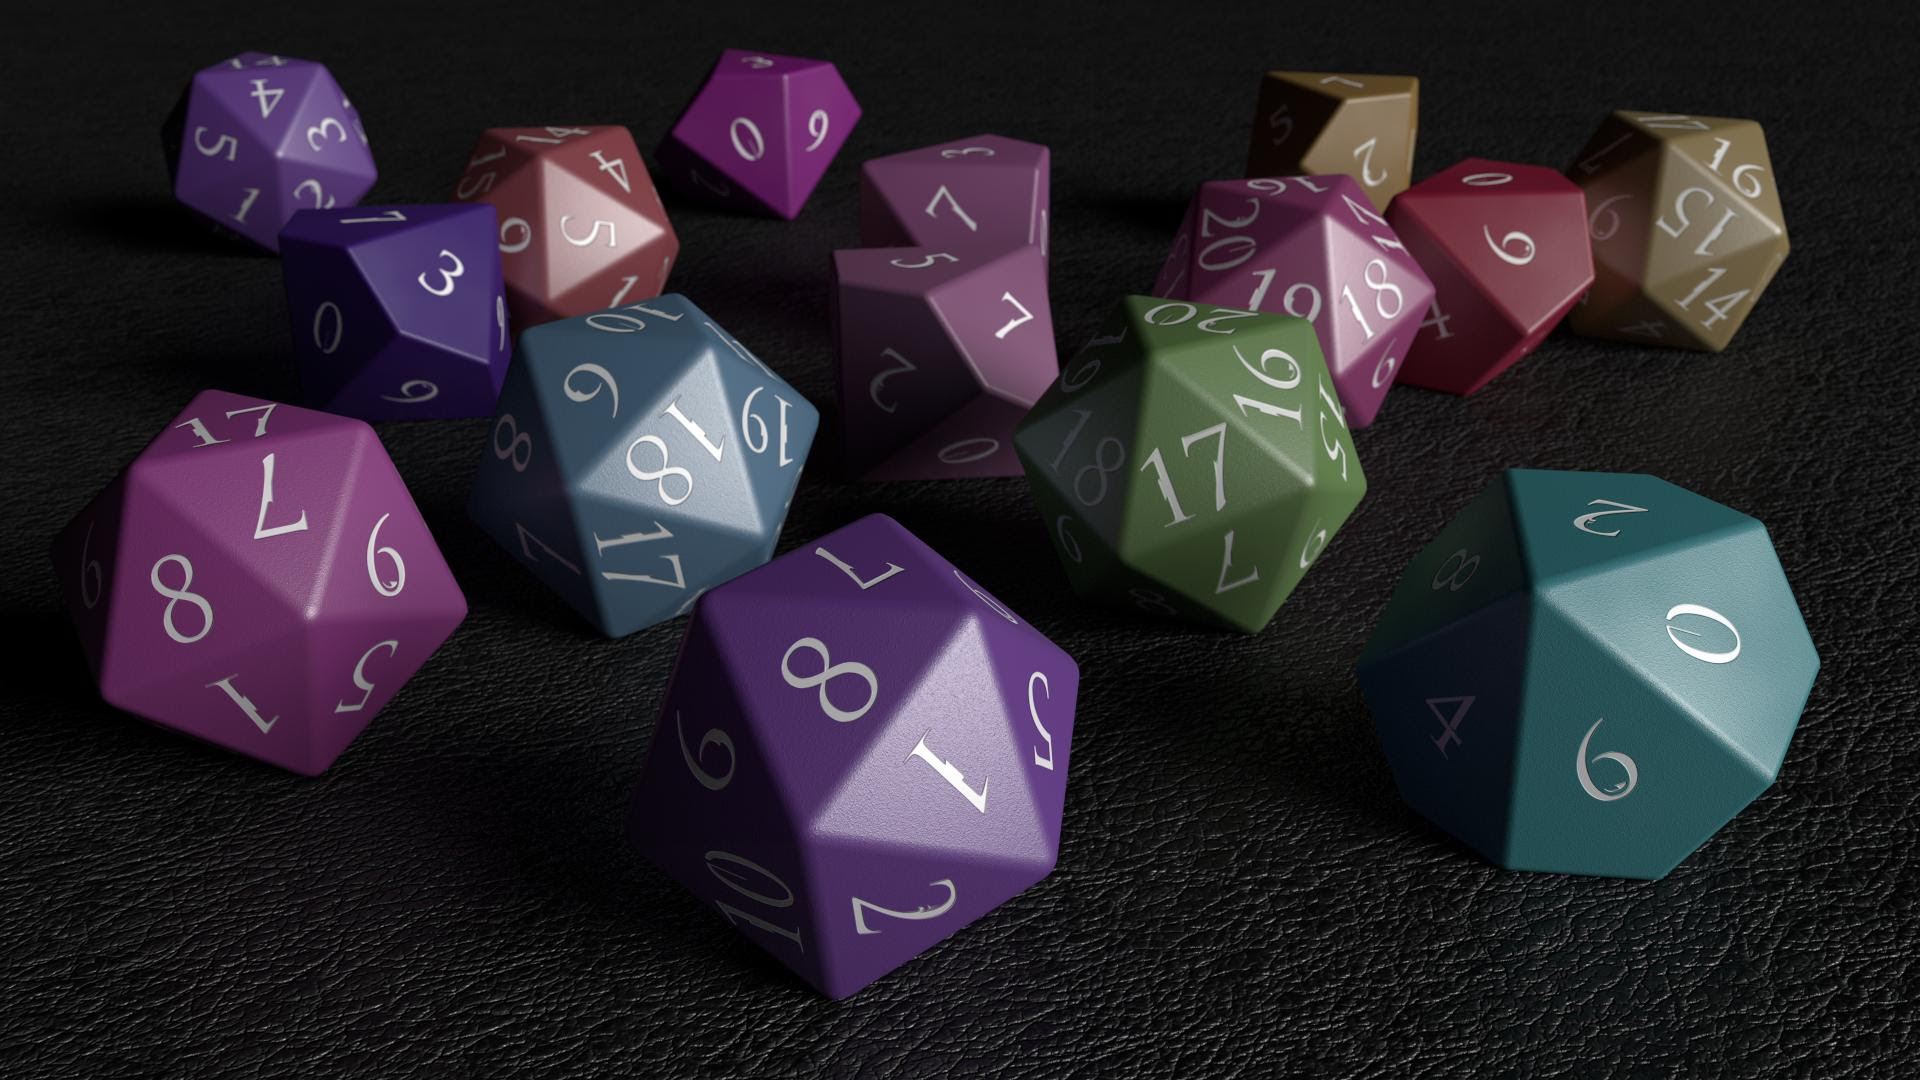 I Made Some Rpg Dice 1920 X 1080 Wallpapers